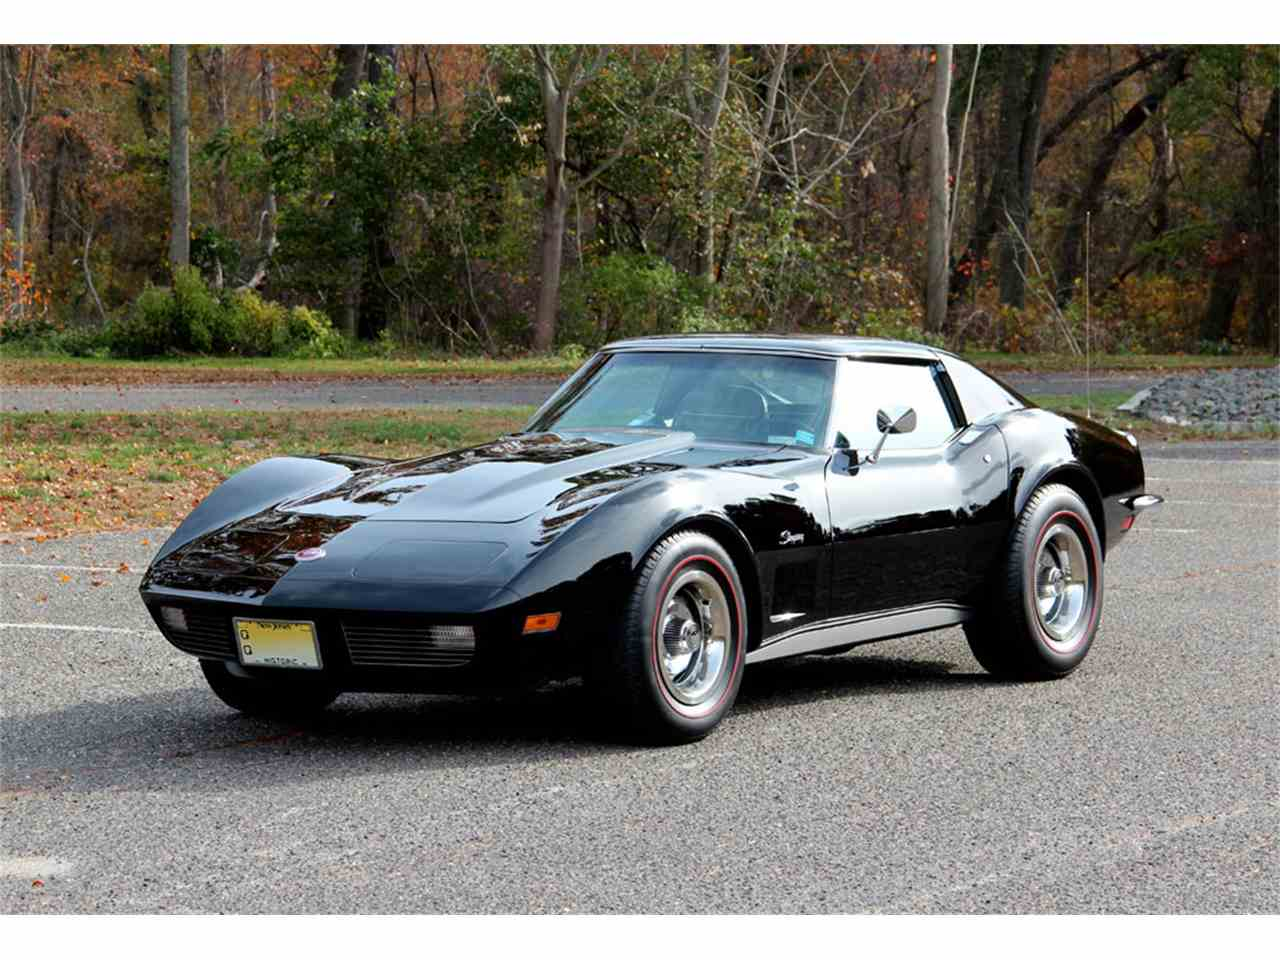 Large Picture of 1973 Corvette located in New Jersey - $39,900.00 Offered by a Private Seller - LV76